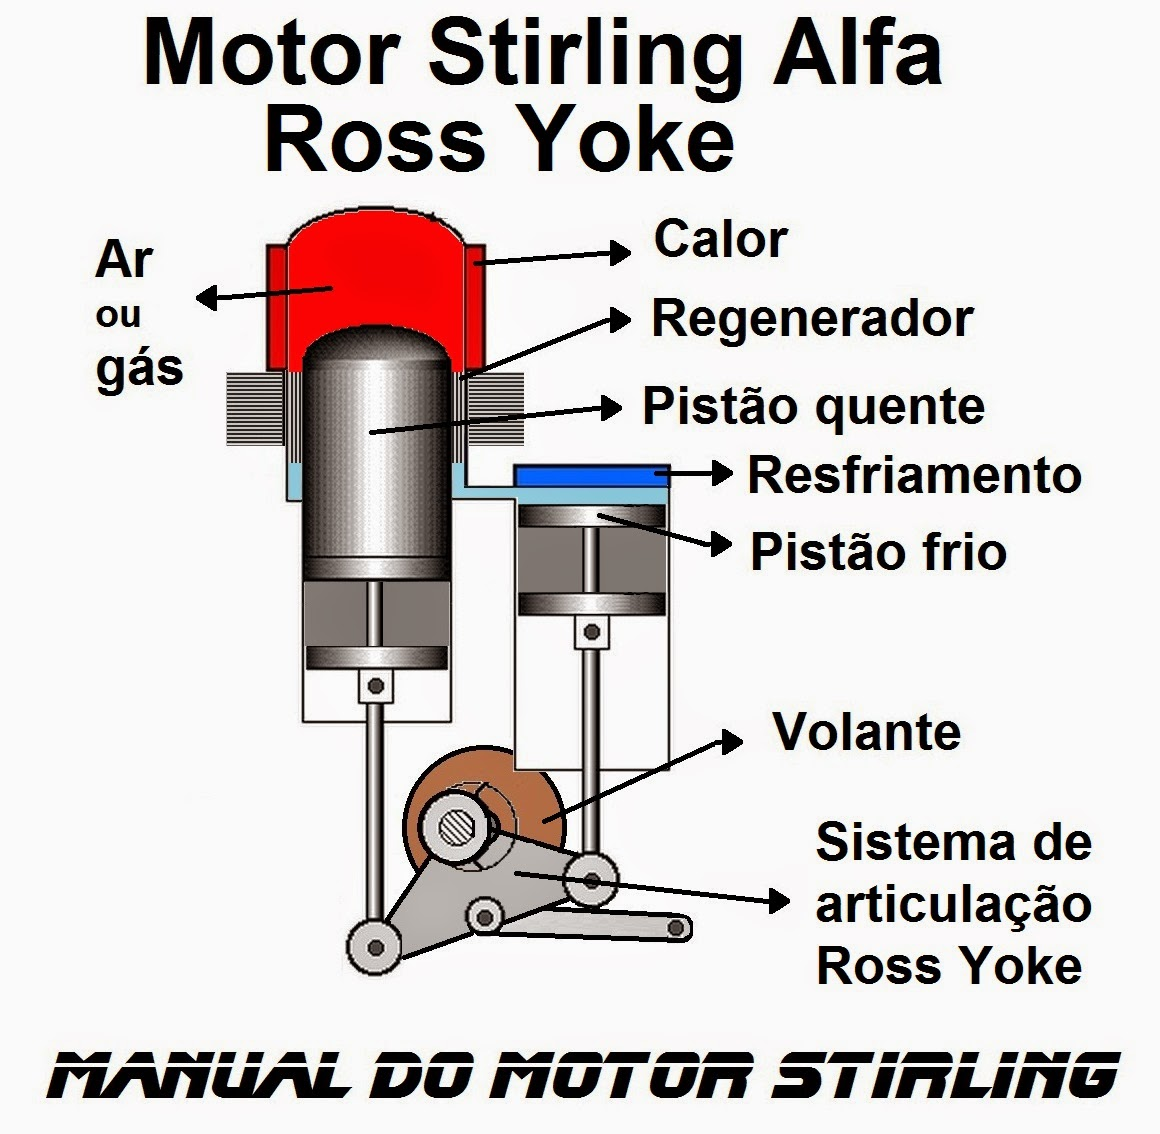 Manual do motor Stirling Alfa Ross Yoke, What is a Alpha Stirling engine Ross Yoke